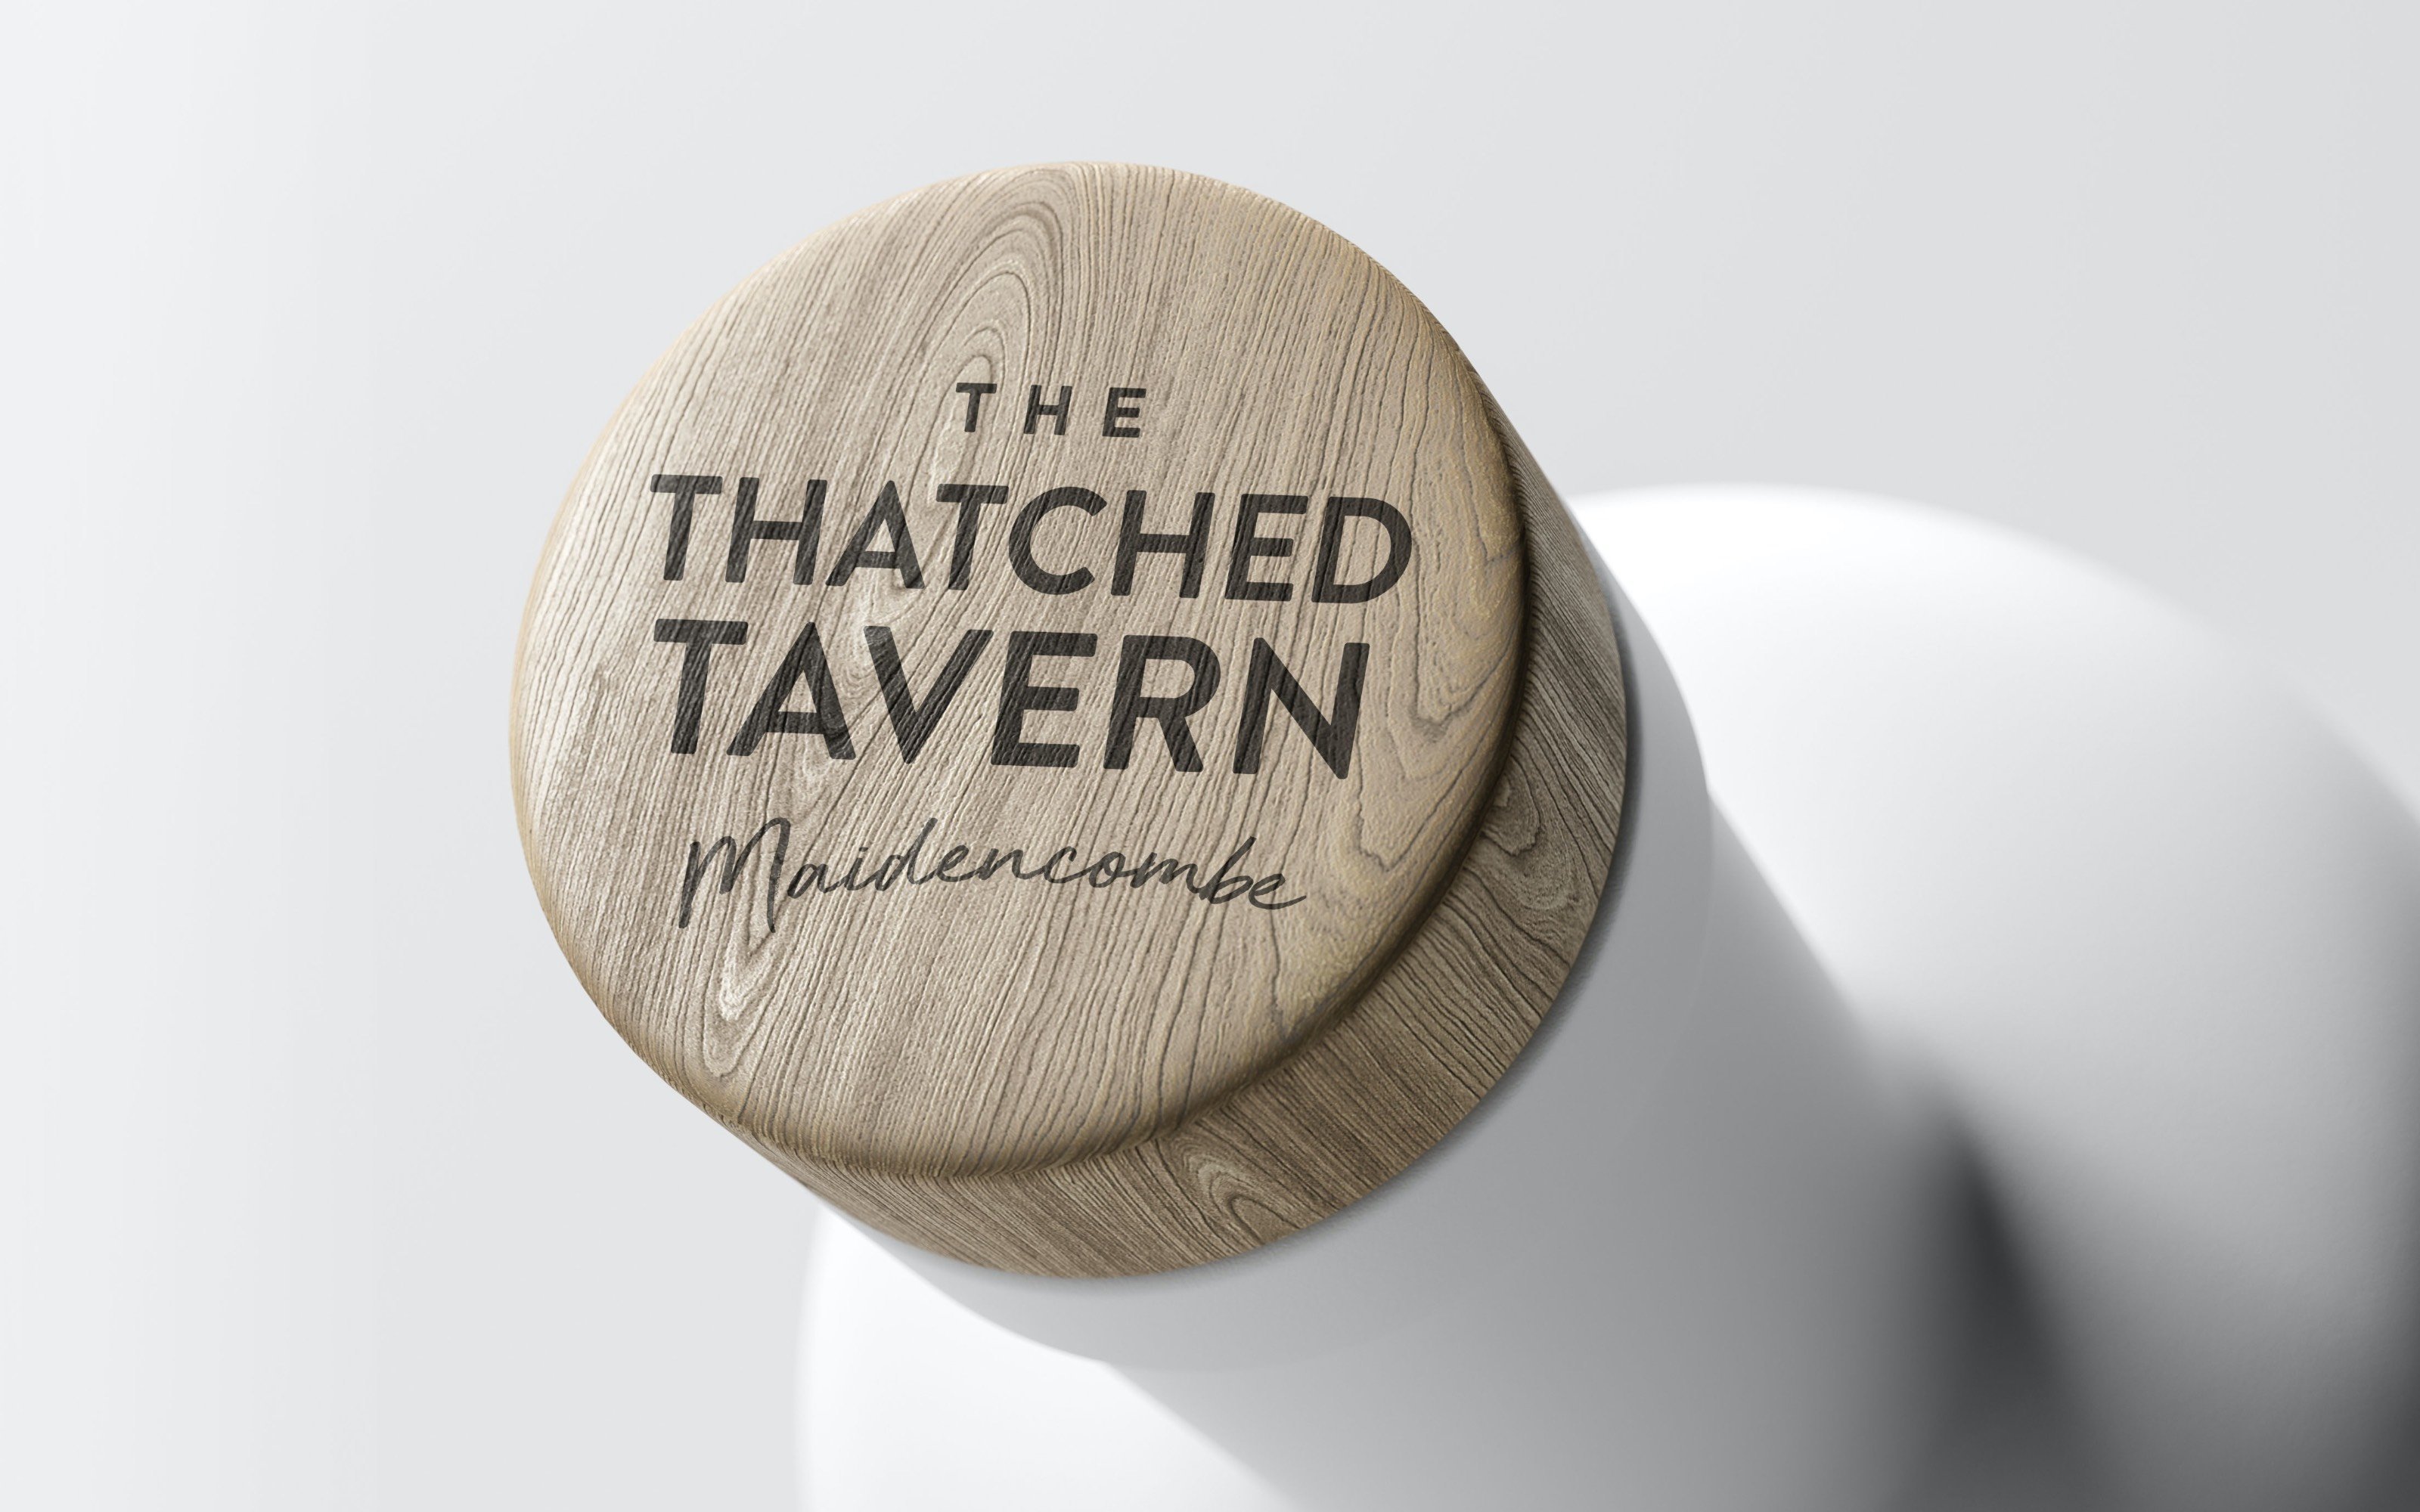 The Thatched Tavern Branding